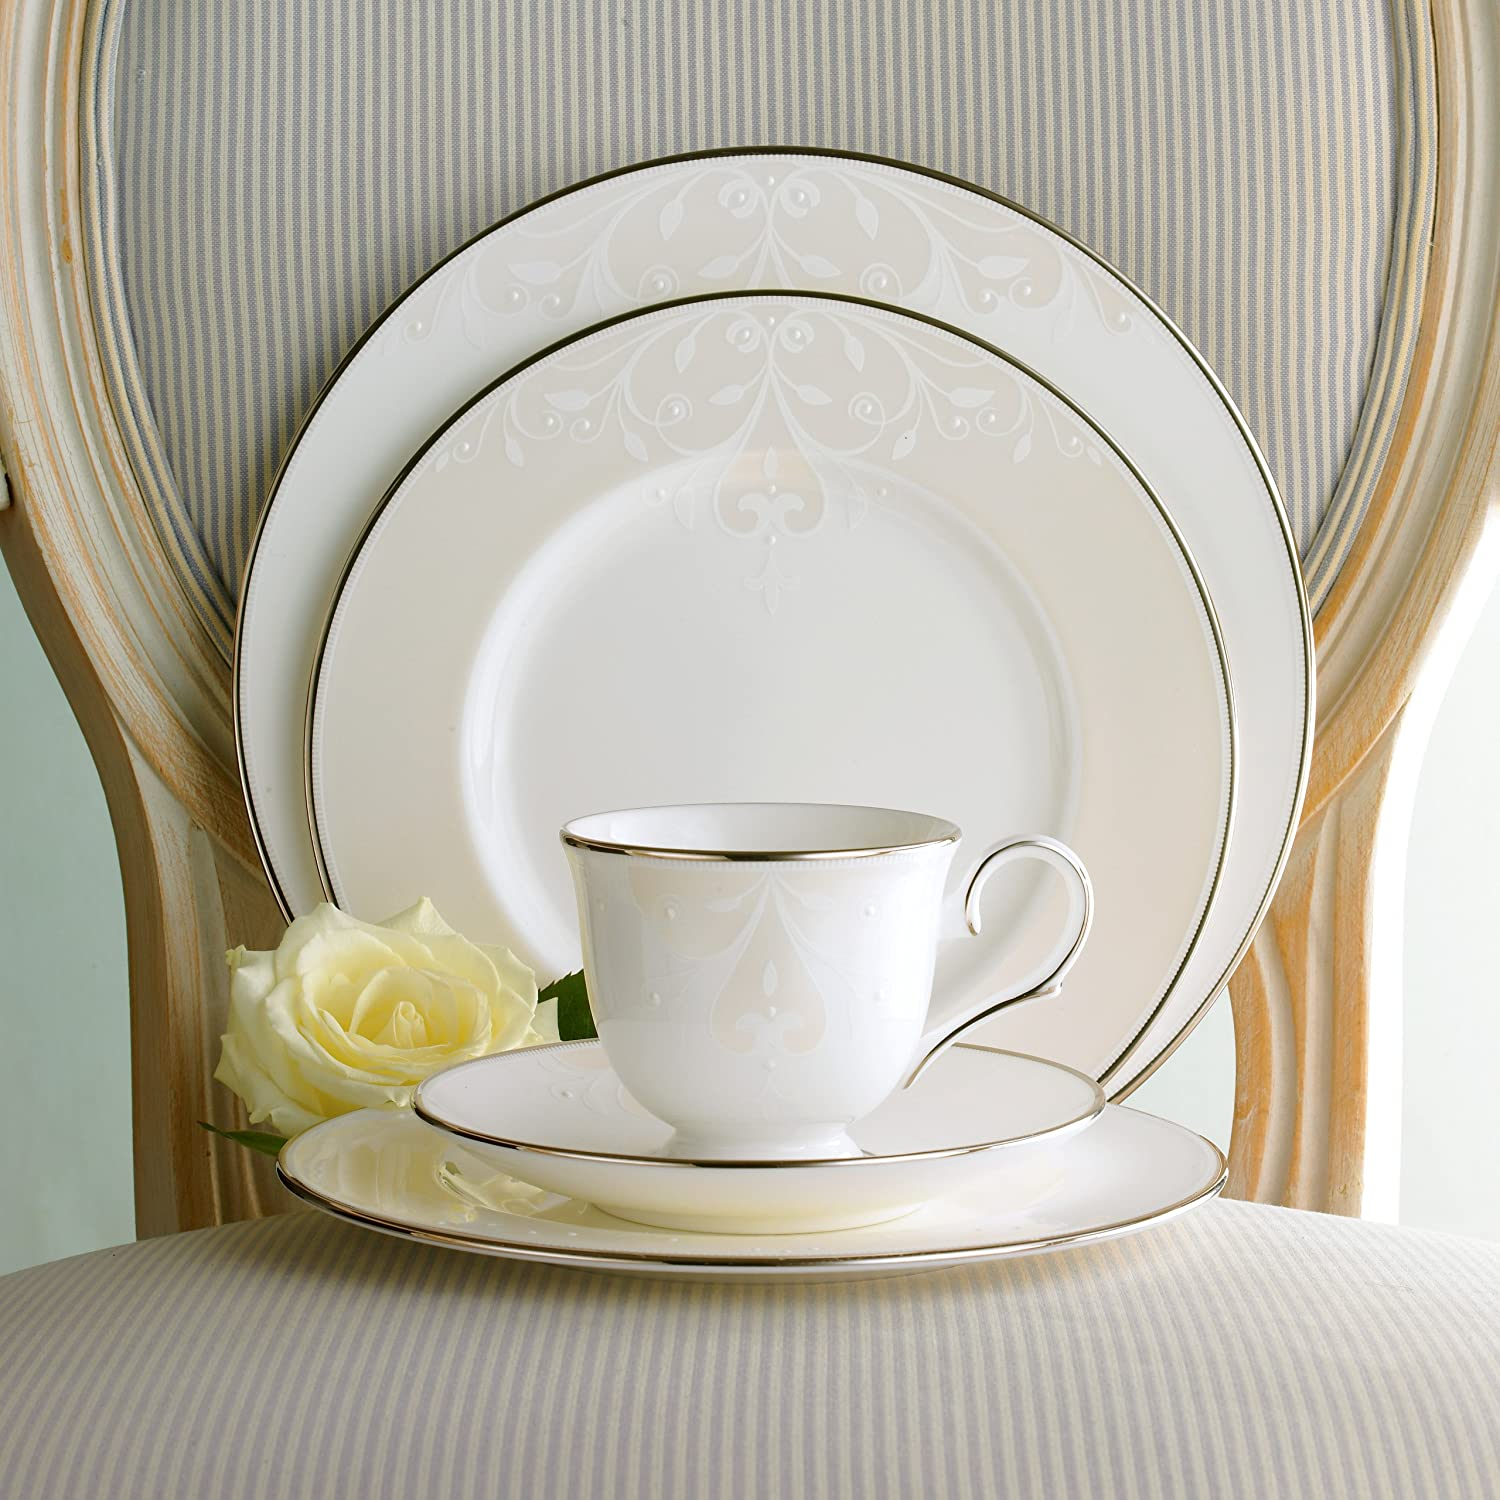 Amazon.com: Lenox Opal Innocence Scroll Place Setting, Service for 1:  Dinnerware Sets: Kitchen & Dining